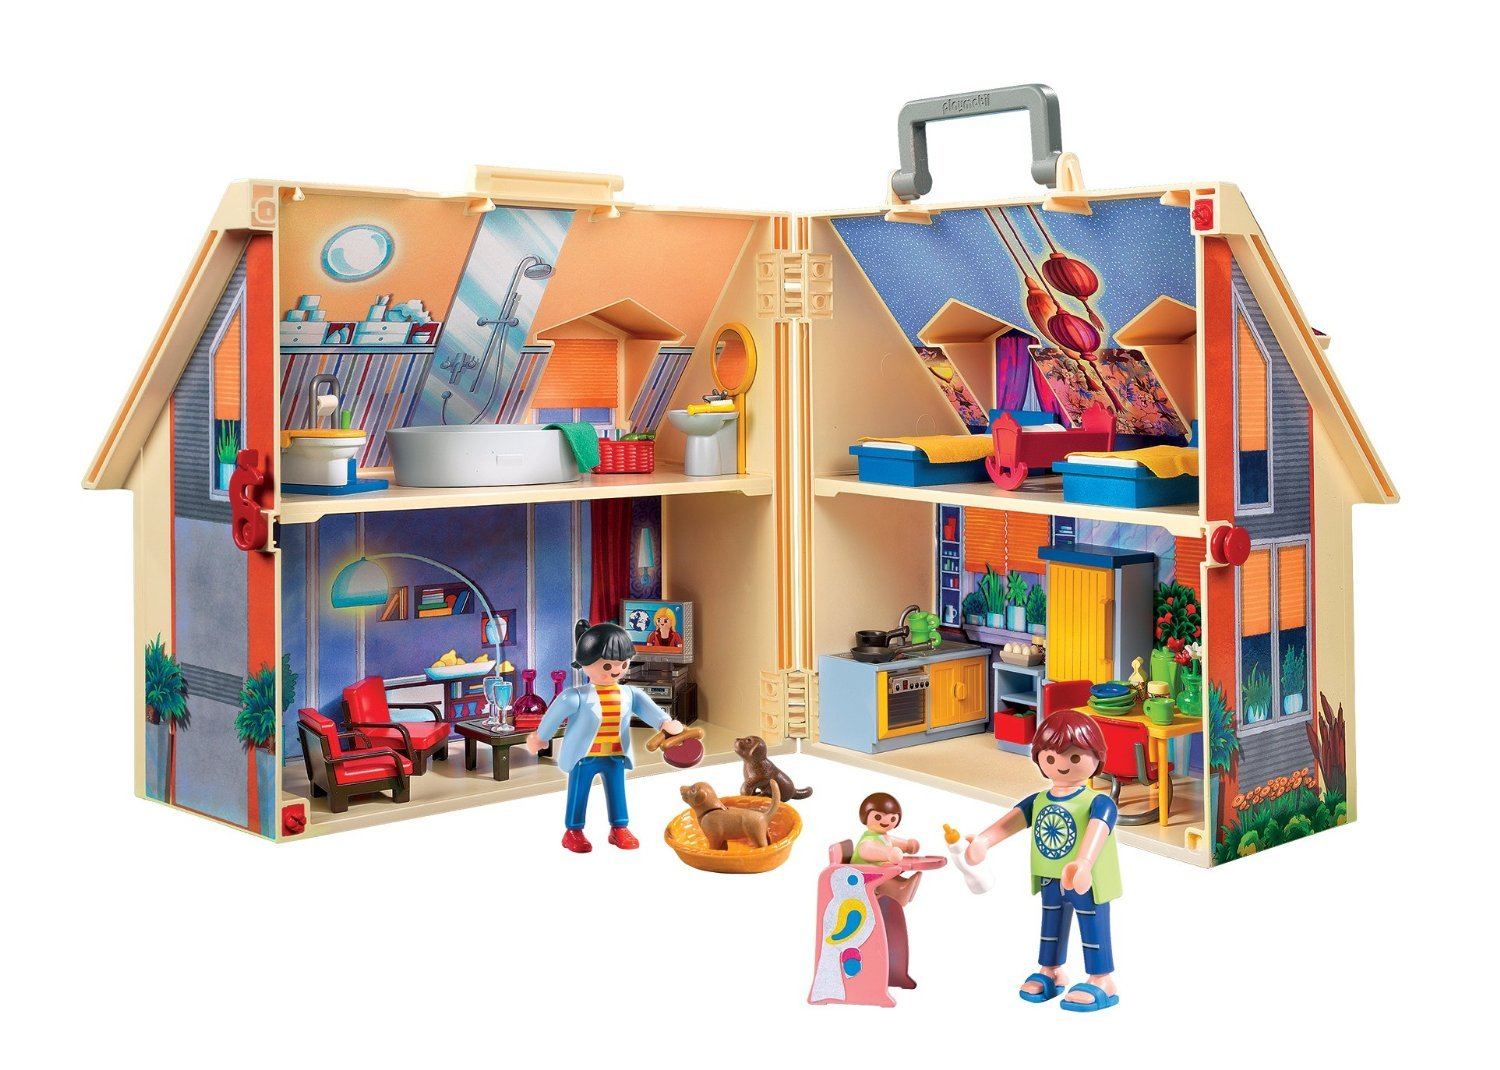 Playmobil take along dolls house at house of fraser for Amazon casa